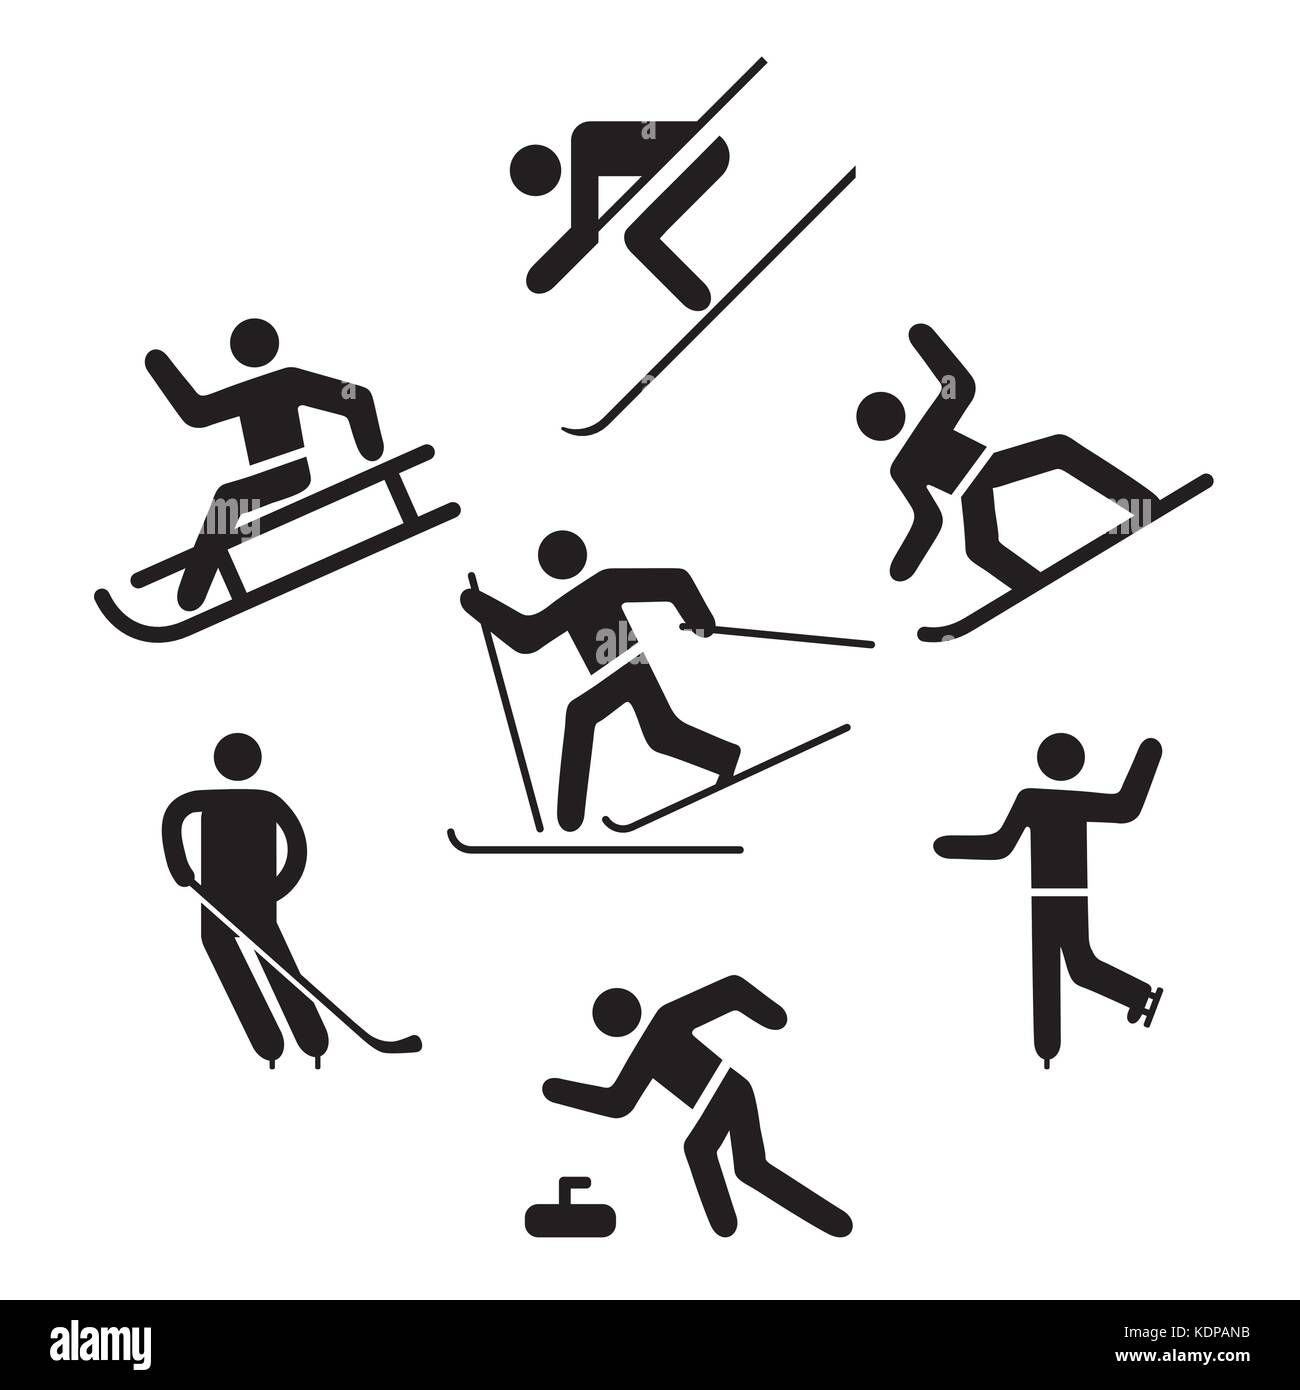 Winter sports Pictogram, Ice skating, Skiing, - Stock Image